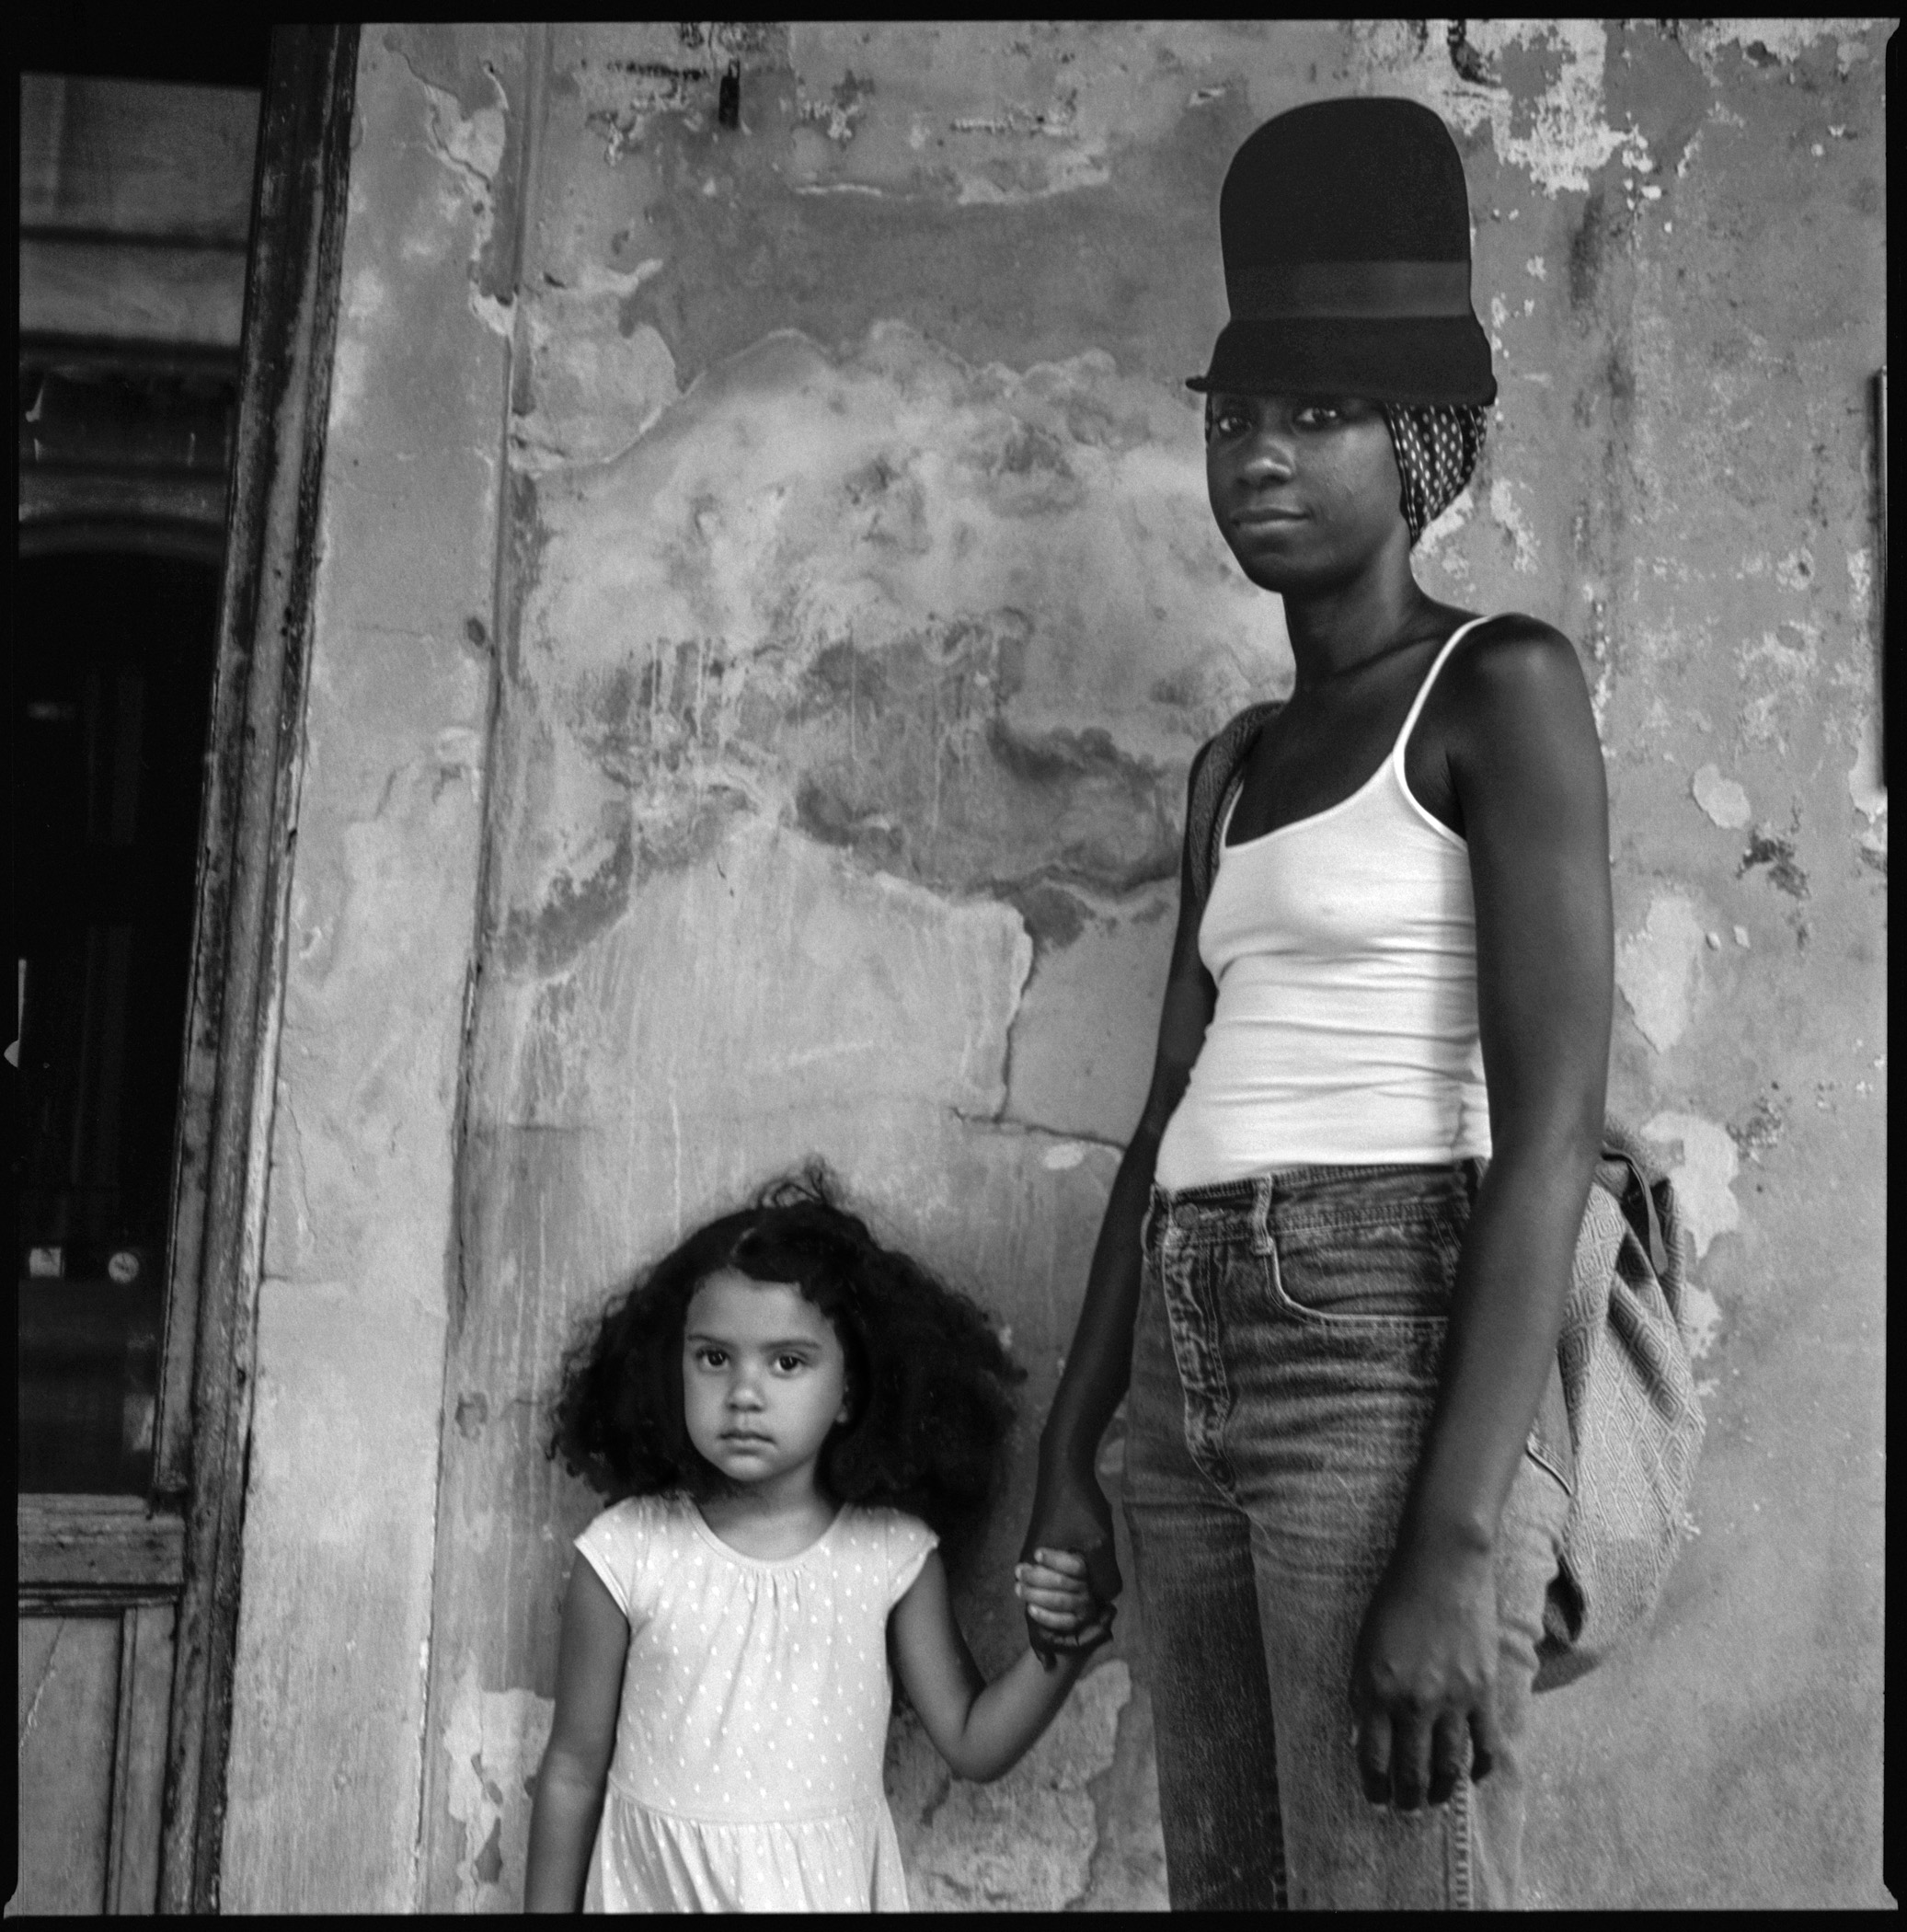 Mother and daughter New Orleans, Louisiana, 2015